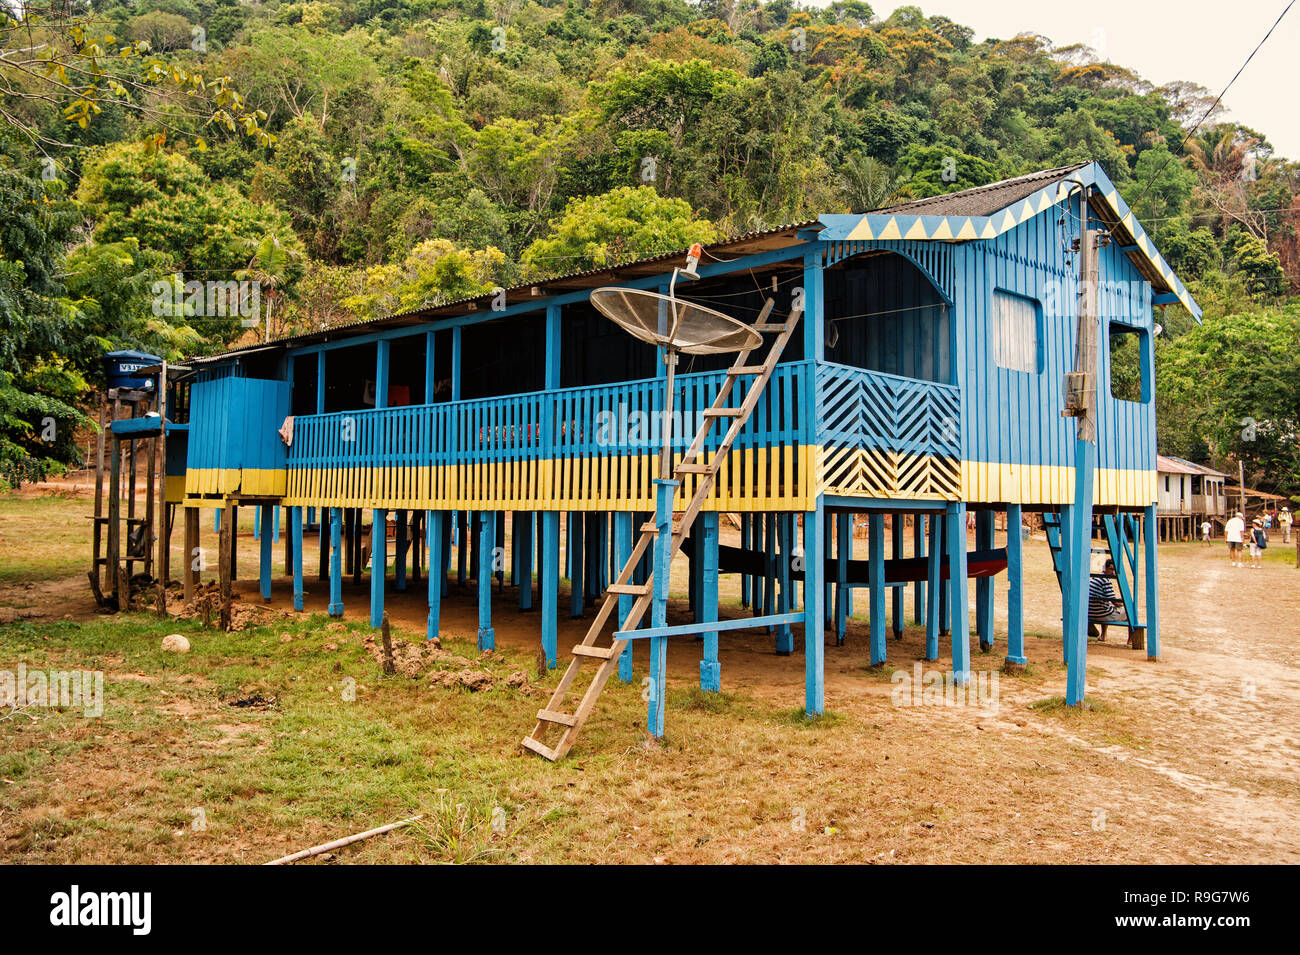 Boca de valeria, Brazil - December 03, 2015: hut on wooden piles in village in jungles on natural background. Poverty and dwelling concept. Stock Photo